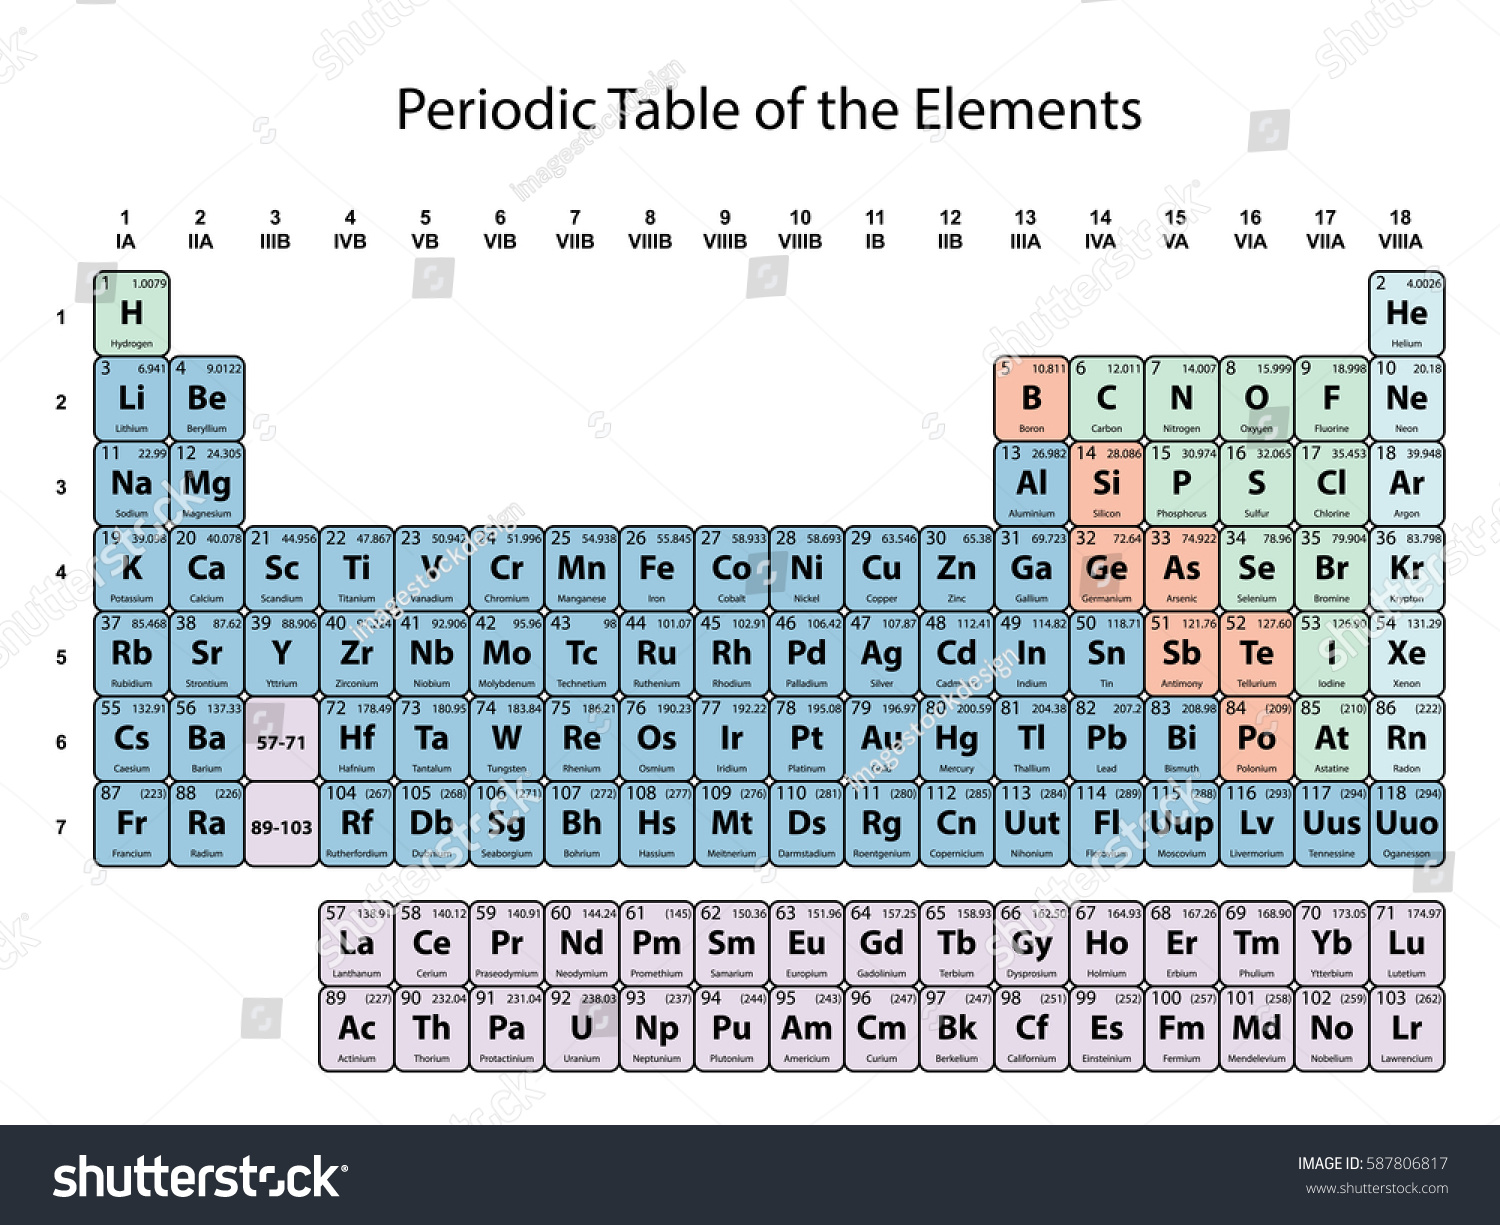 Periodic table elements atomic number symbol stock vector hd periodic table of the elements with atomic number symbol and weight with color delimitation on urtaz